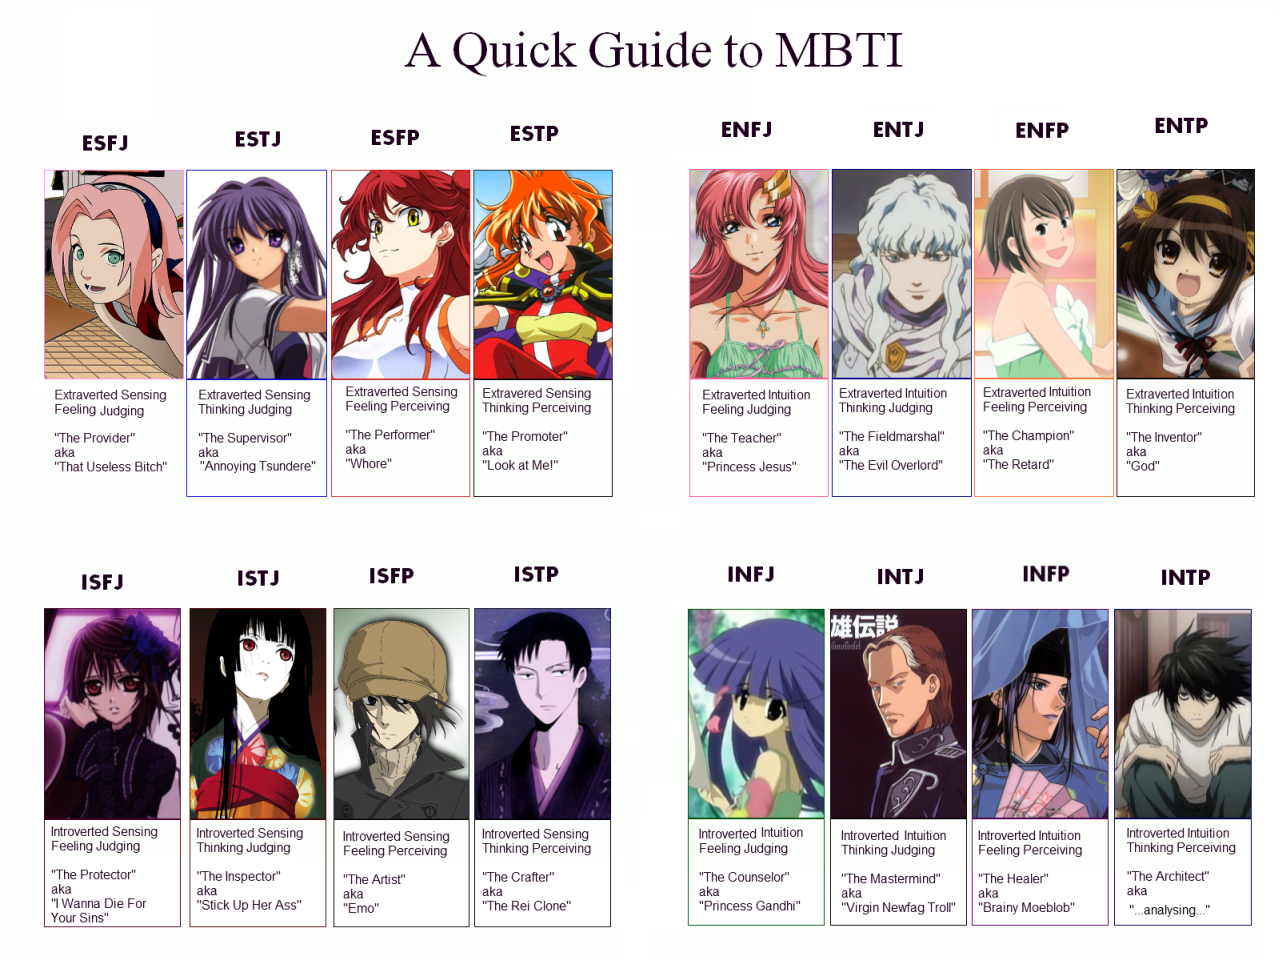 Mbti guide anime style lol i cant believe they used l from death note as an example for me